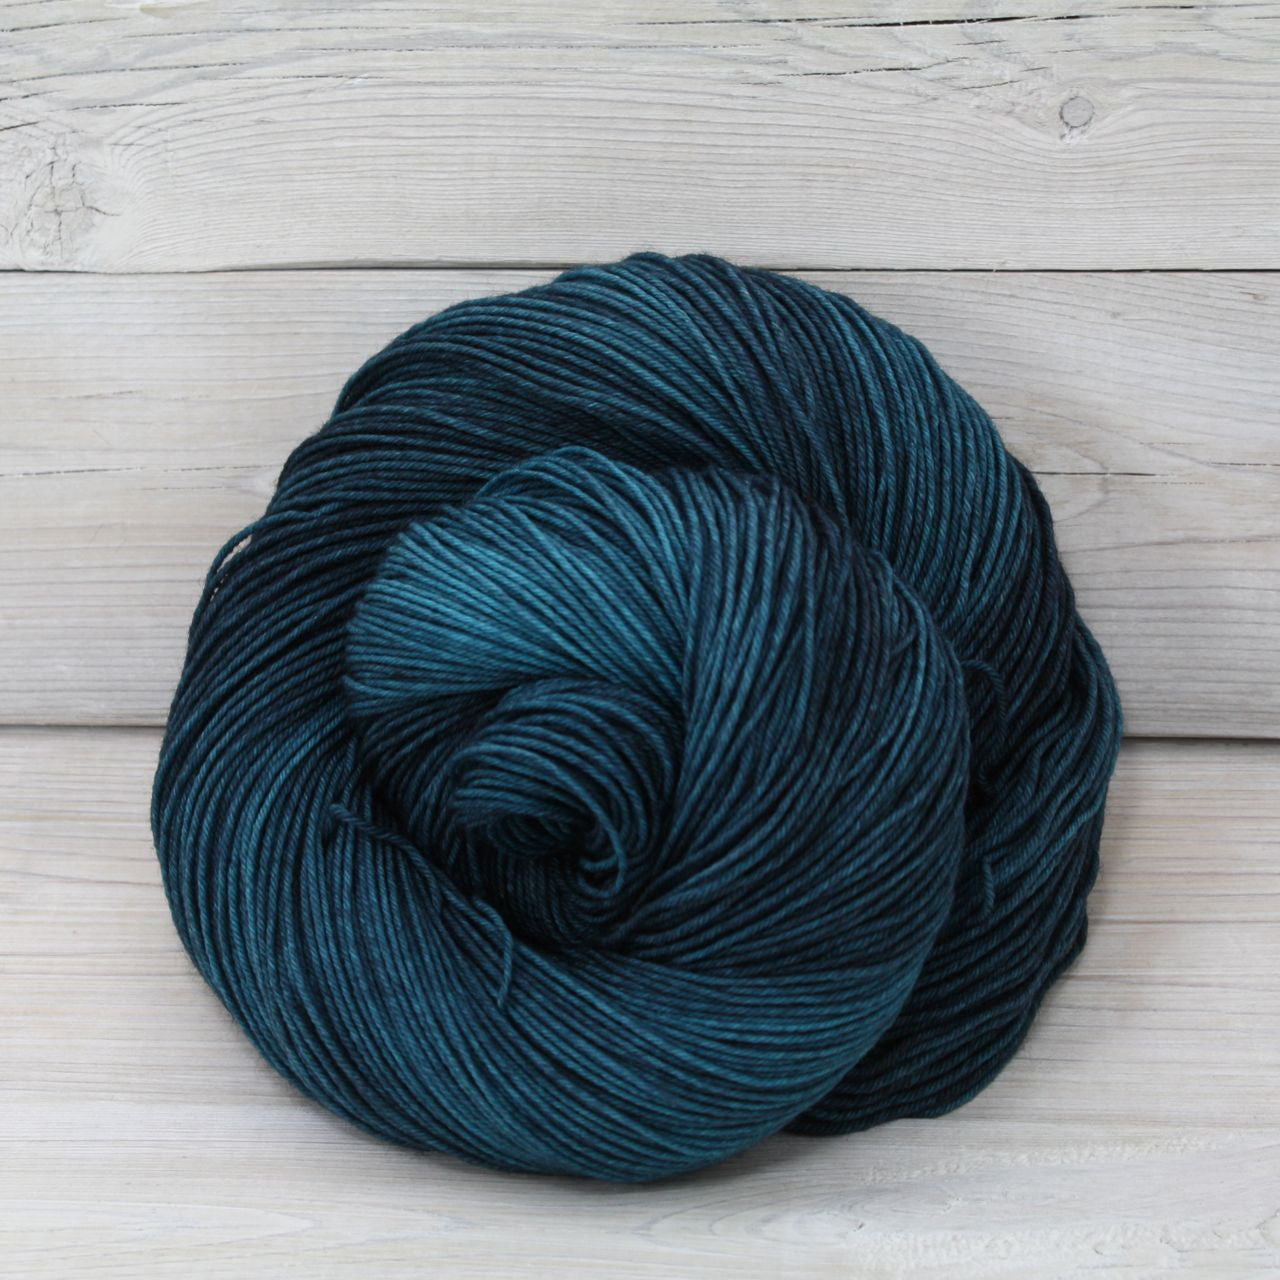 Luna Grey Fiber Arts Athena Sock Yarn | Colorway: Techno